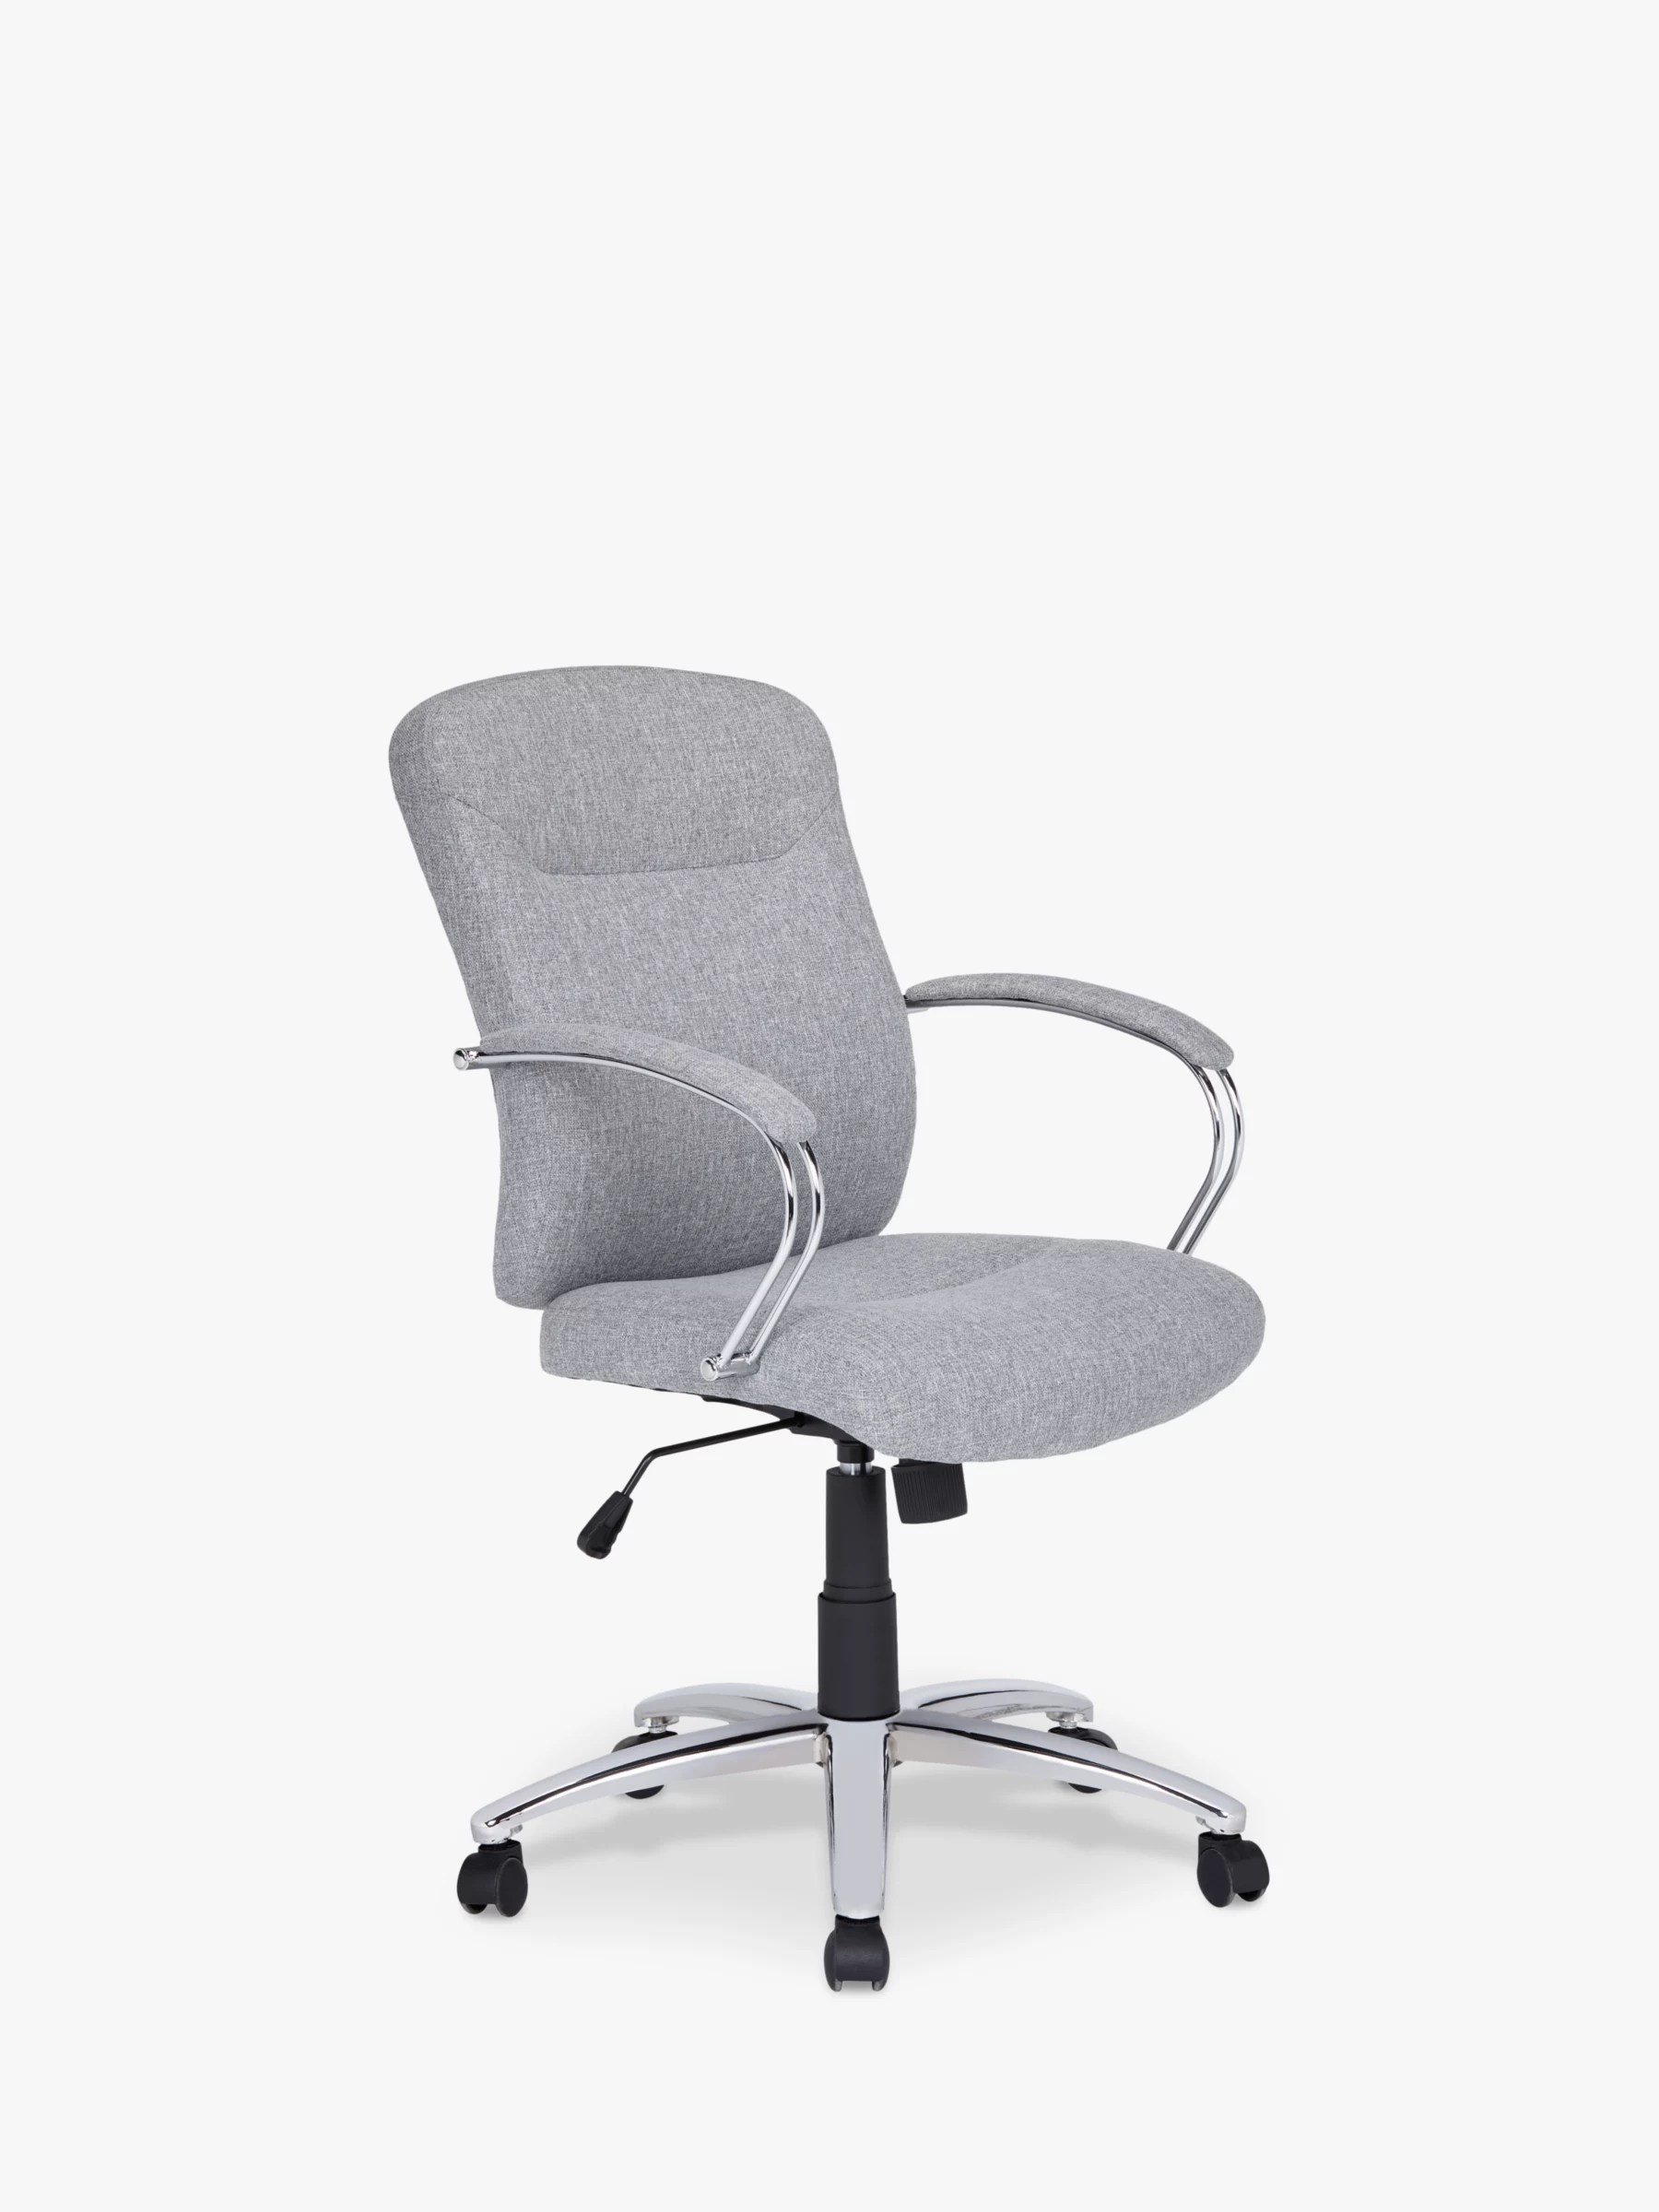 grey fabric swivel office chair walmart table and chairs set john lewis partners warner at